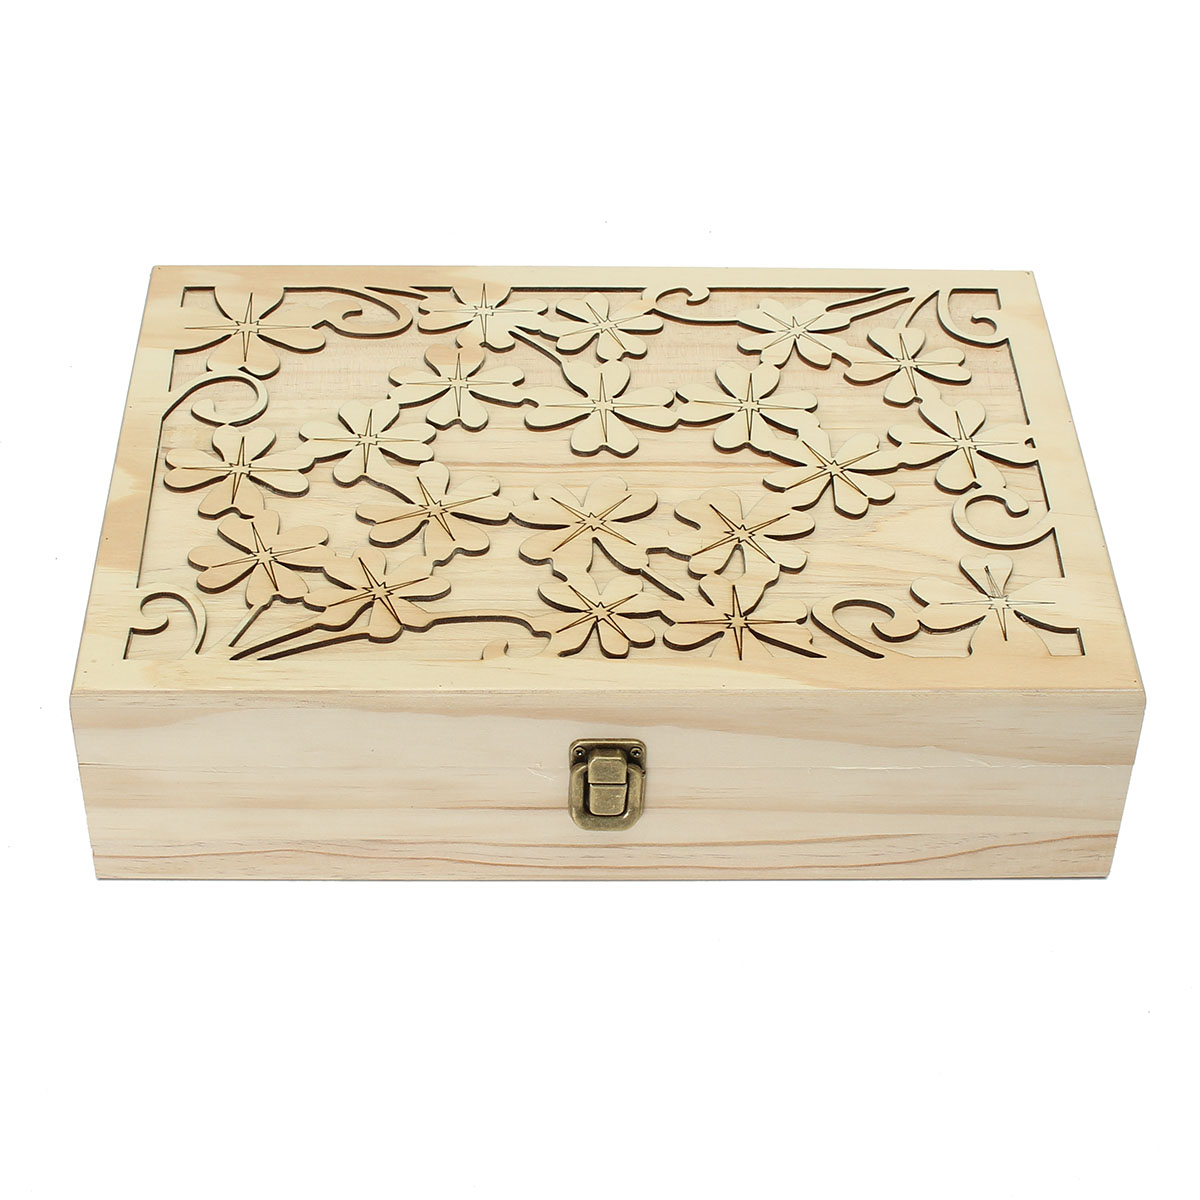 70 Slots Wooden Carved Case Container Essential Oils Bo